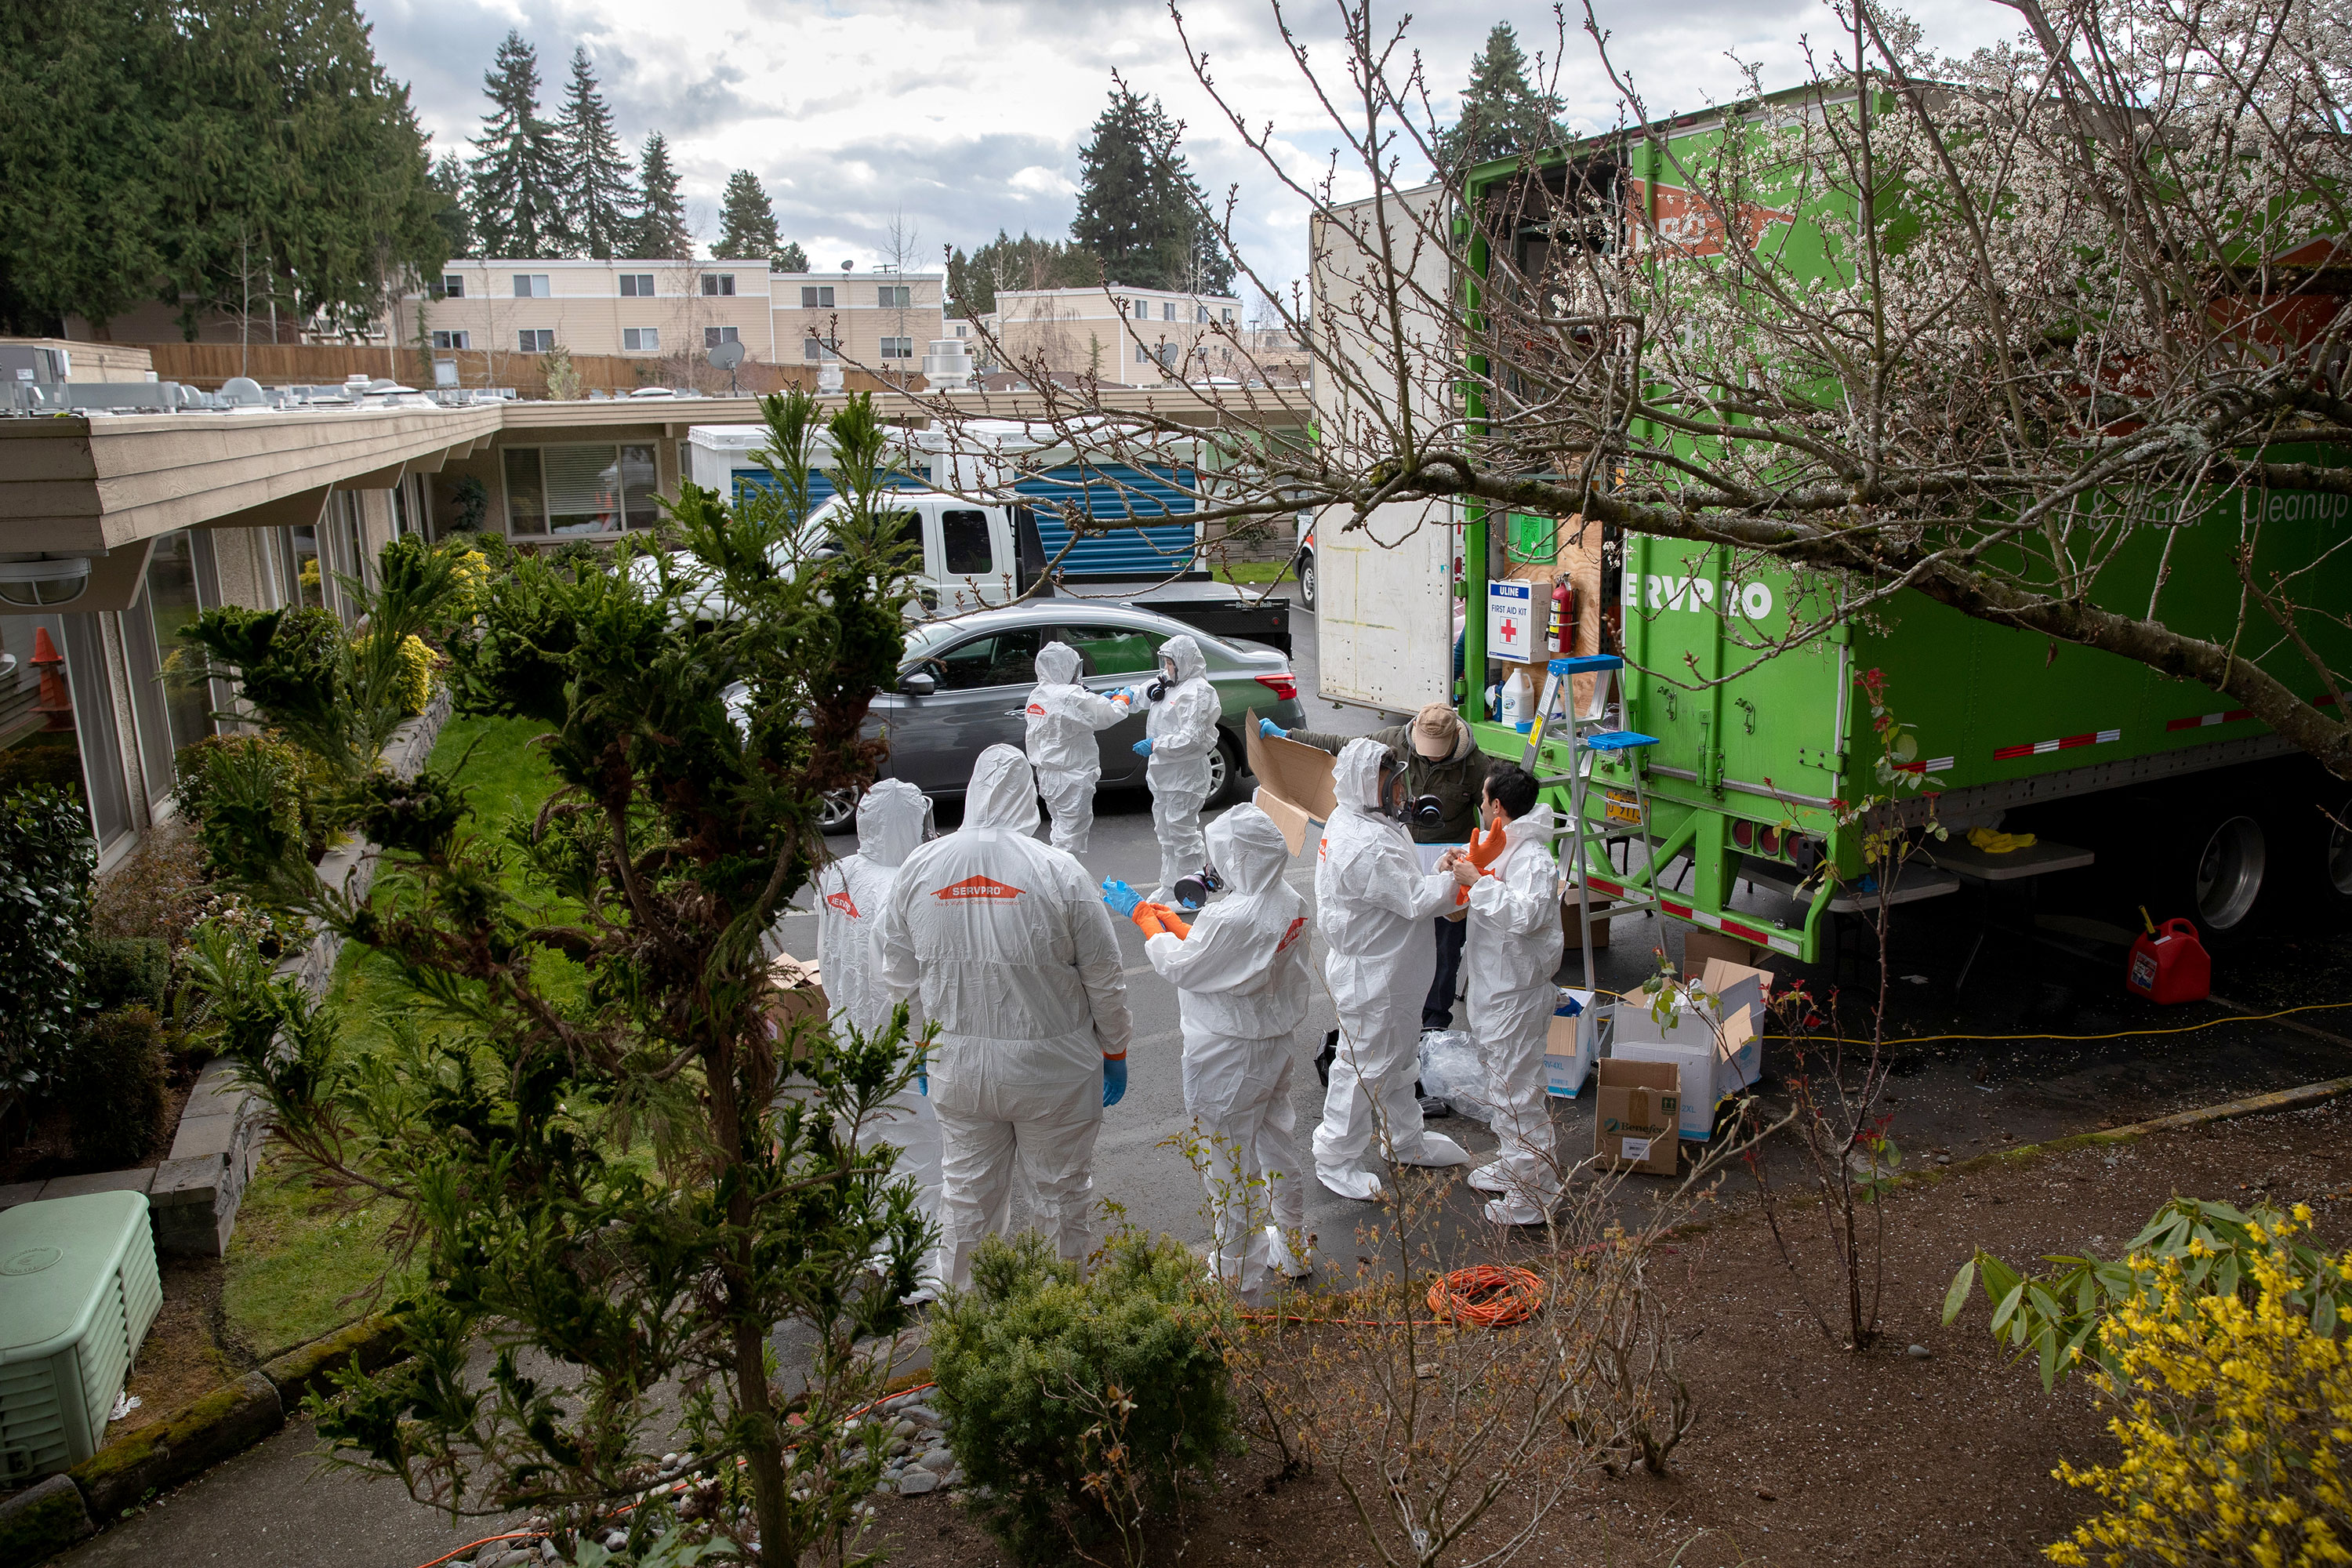 A cleaning crew prepares to enter the Life Care Center in Kirkland, Washington on March 12.